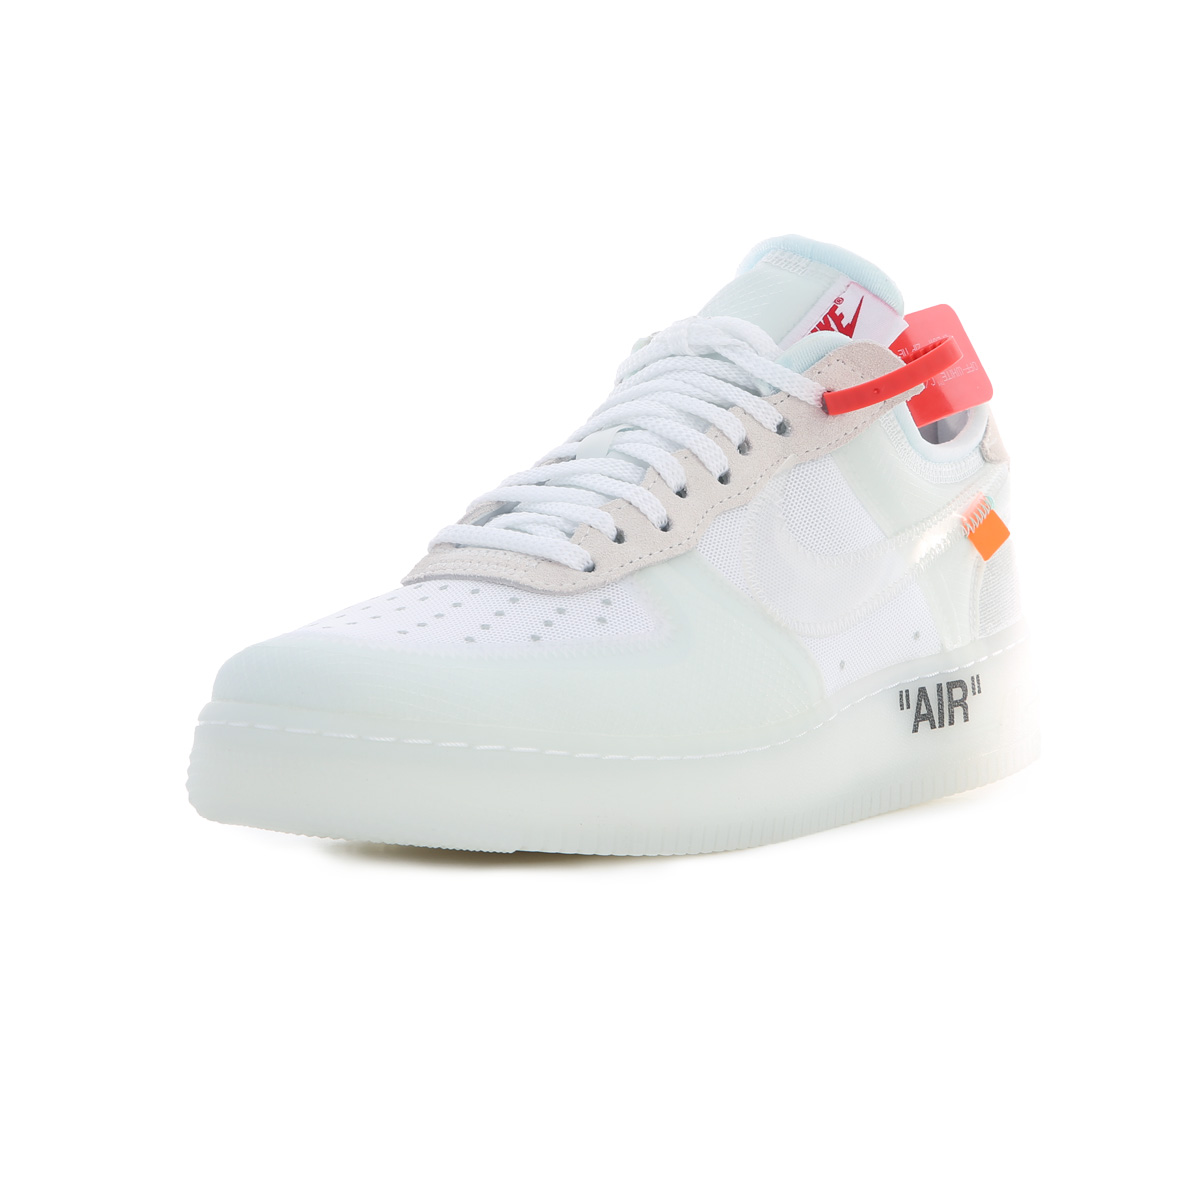 3 Air Force Off-White2.jpg